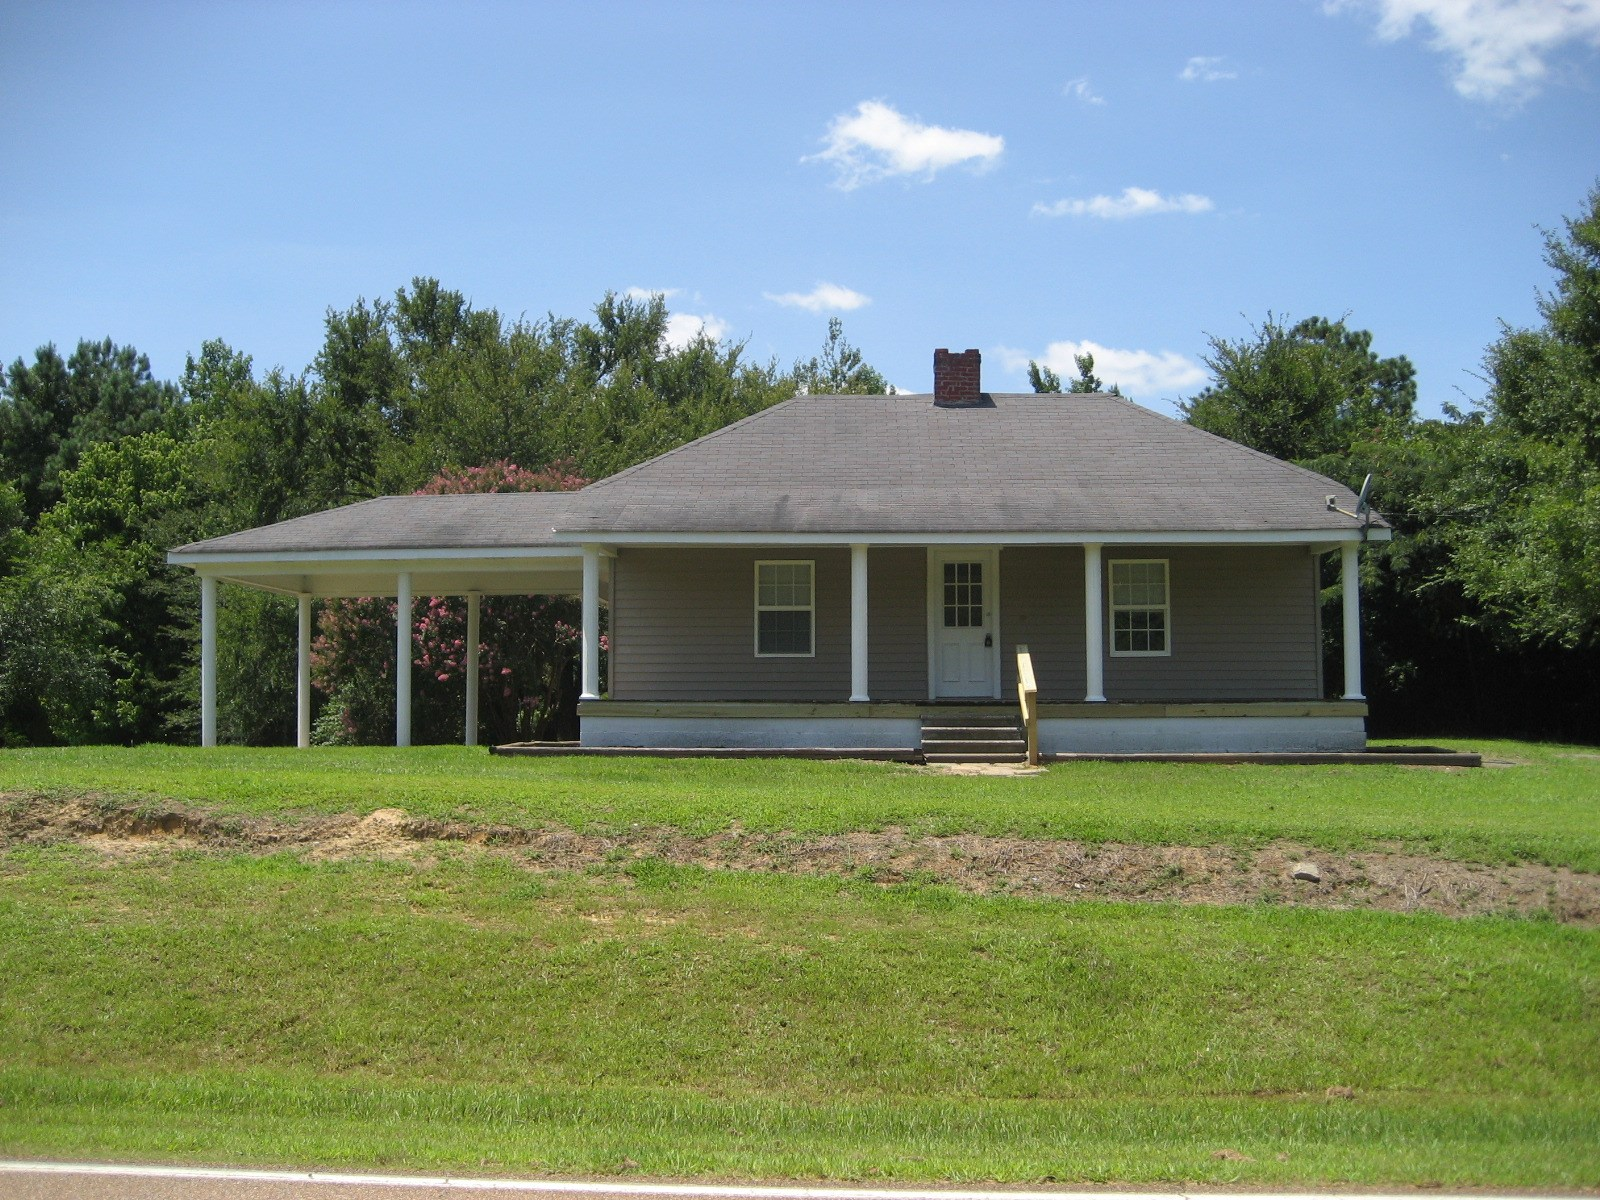 COUNTRY HOME FOR SALE IN ADAMSVILLE, TN - HISTORIC HOME